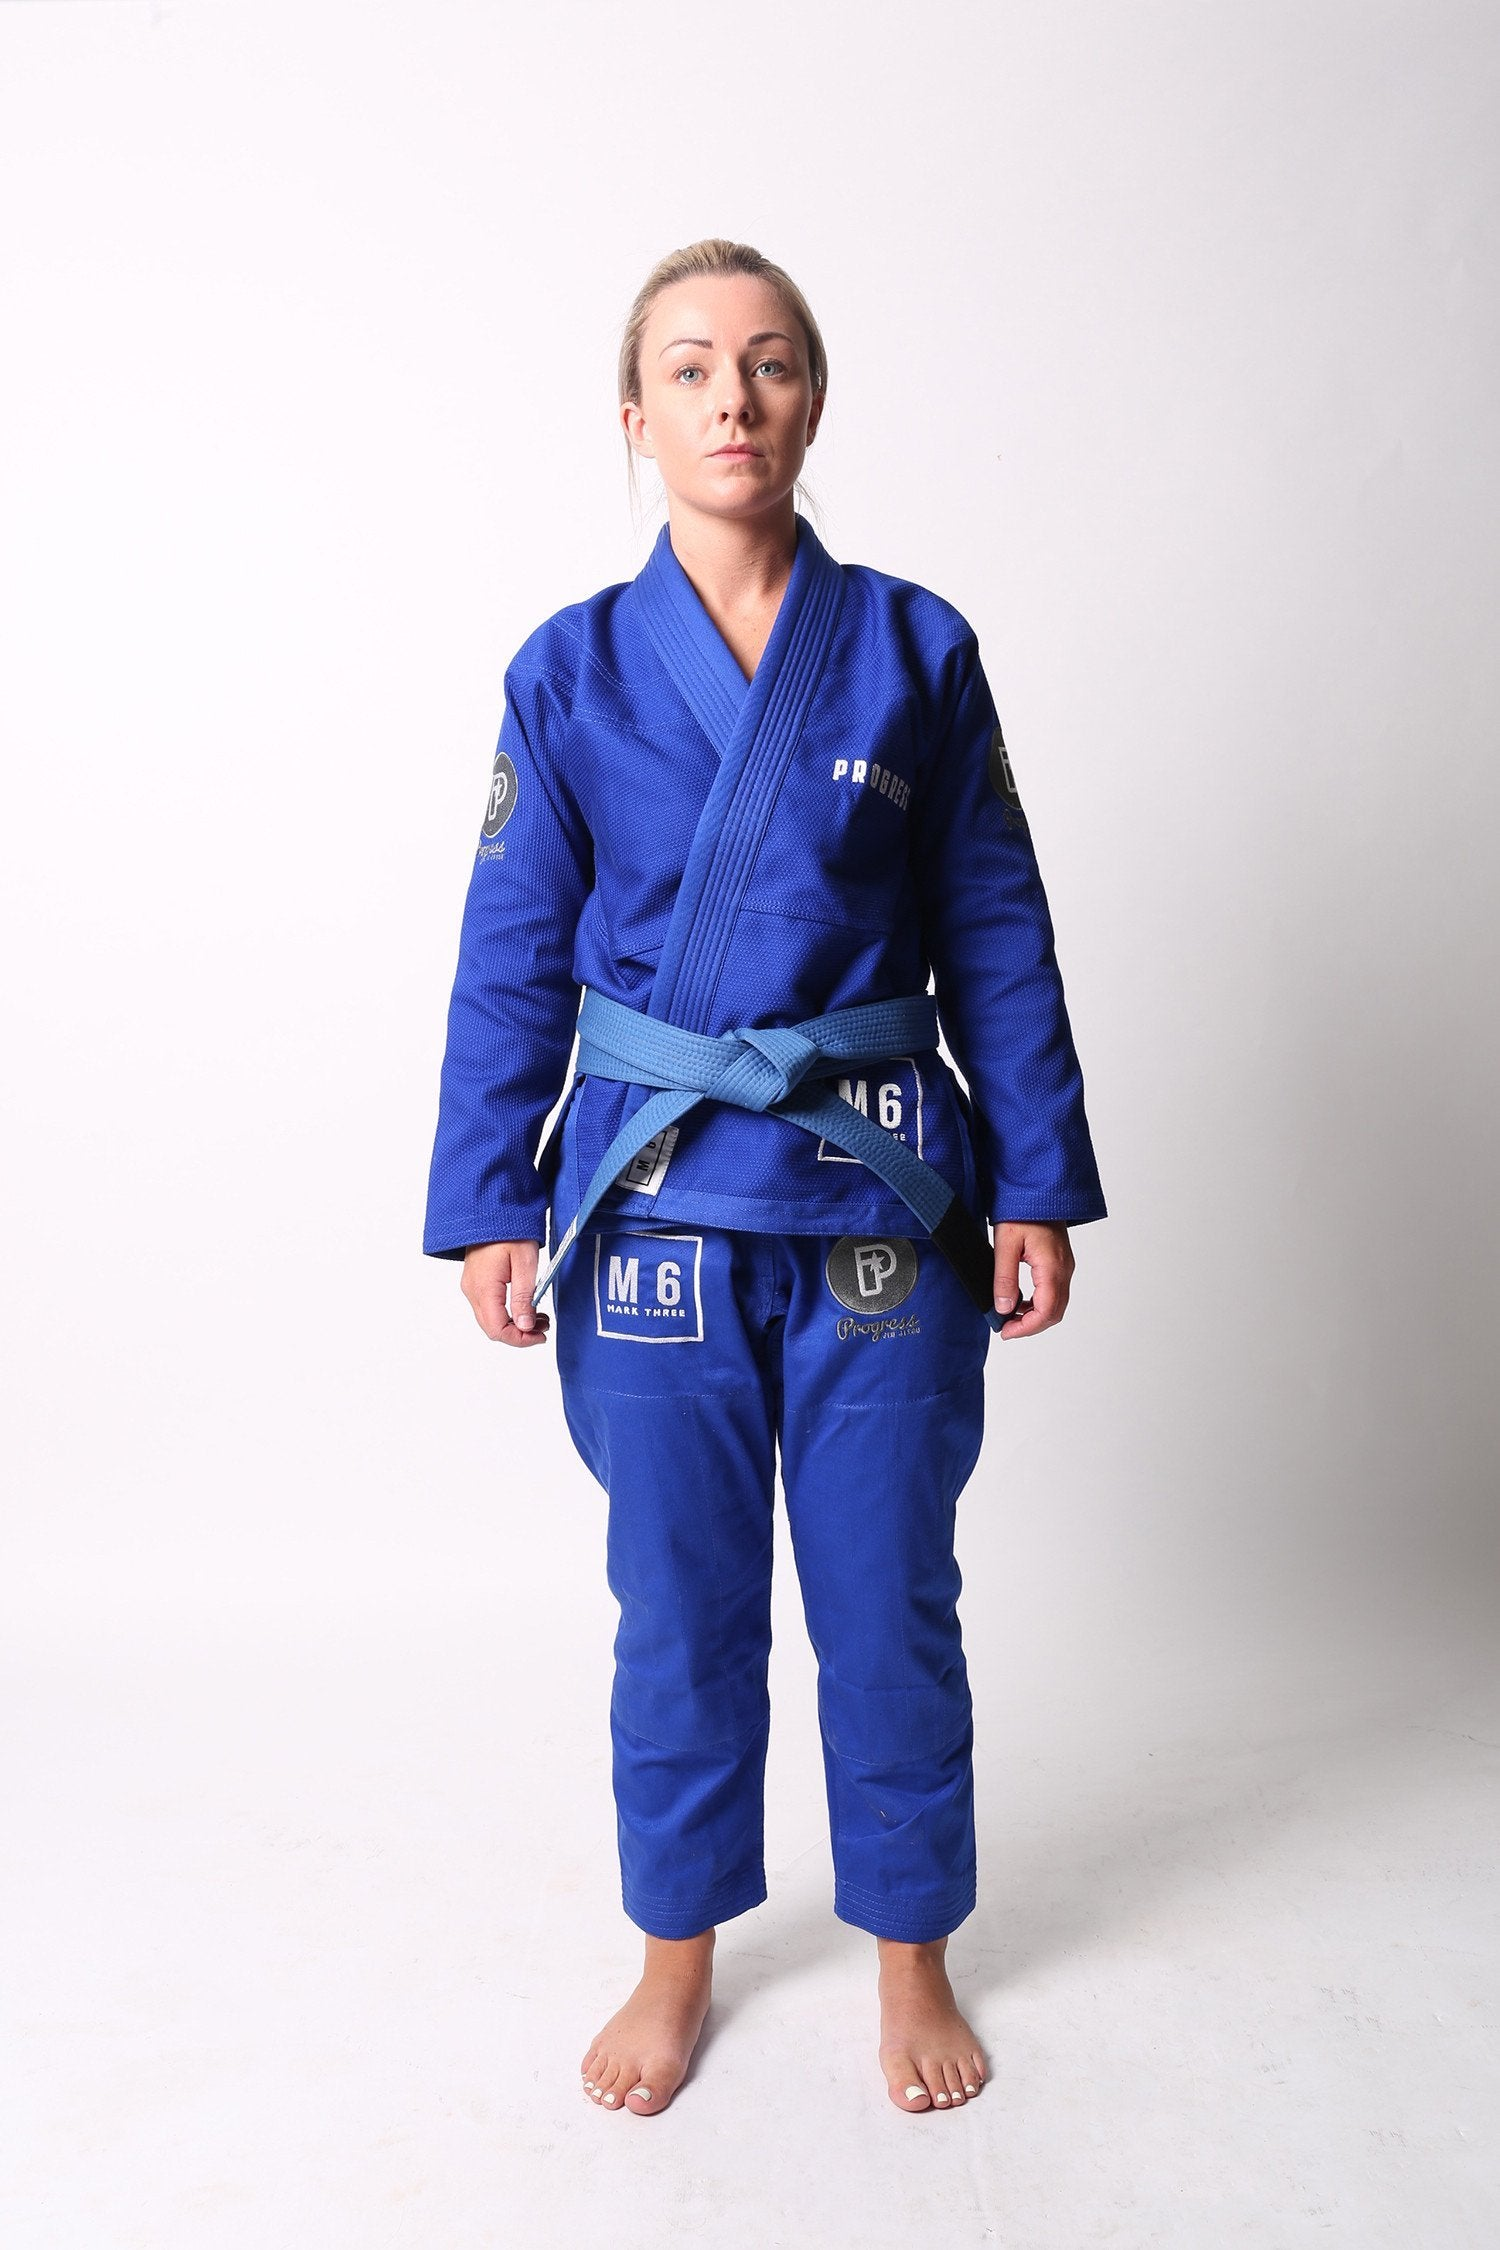 Image of Progress M6 MK3 Blue Ladies BJJ Gi